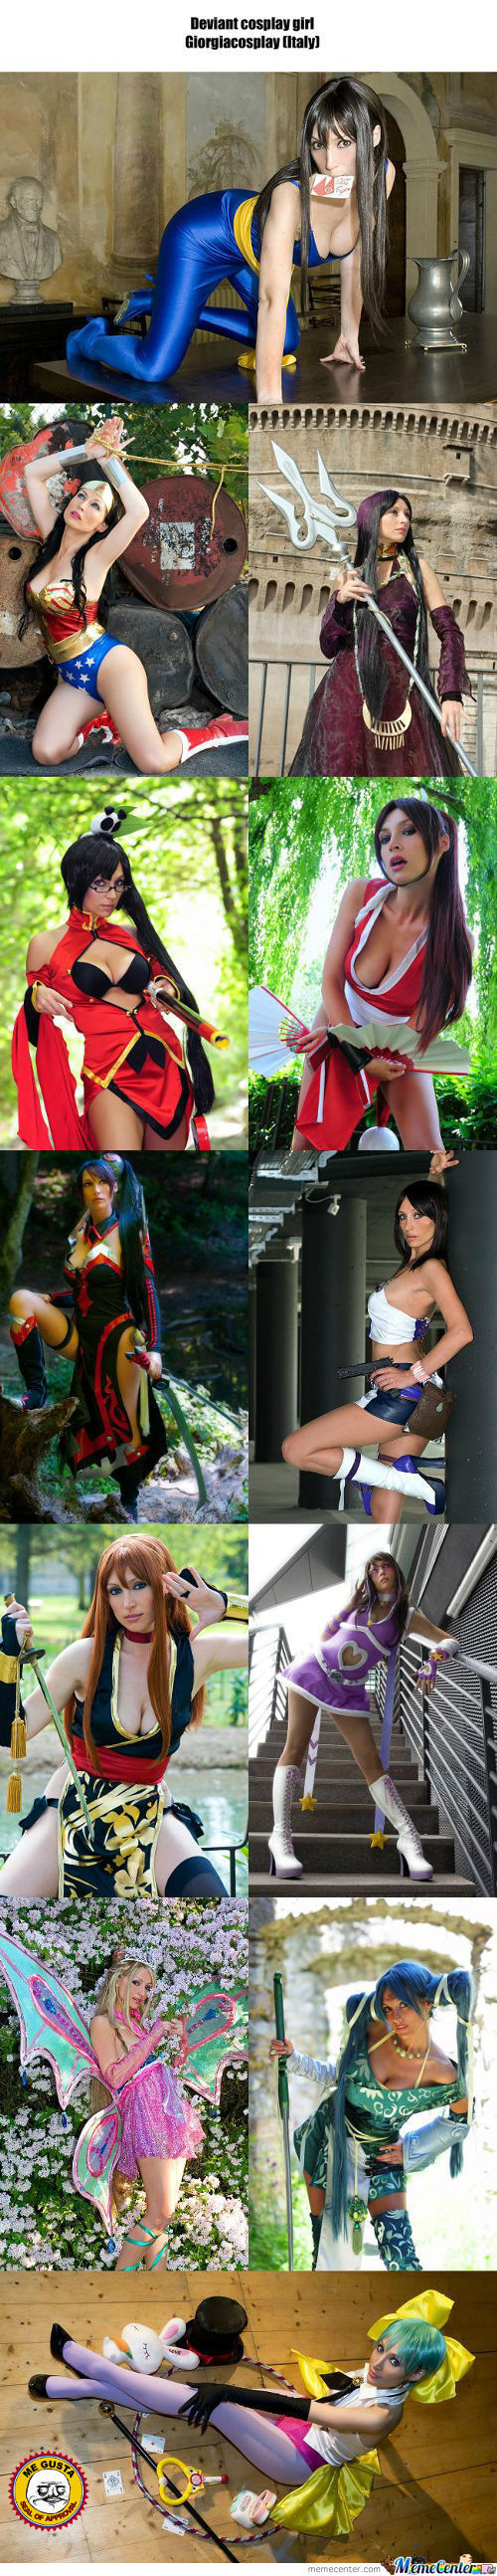 Cosplay Girl 64 : Giorgiacosplay (Italy)